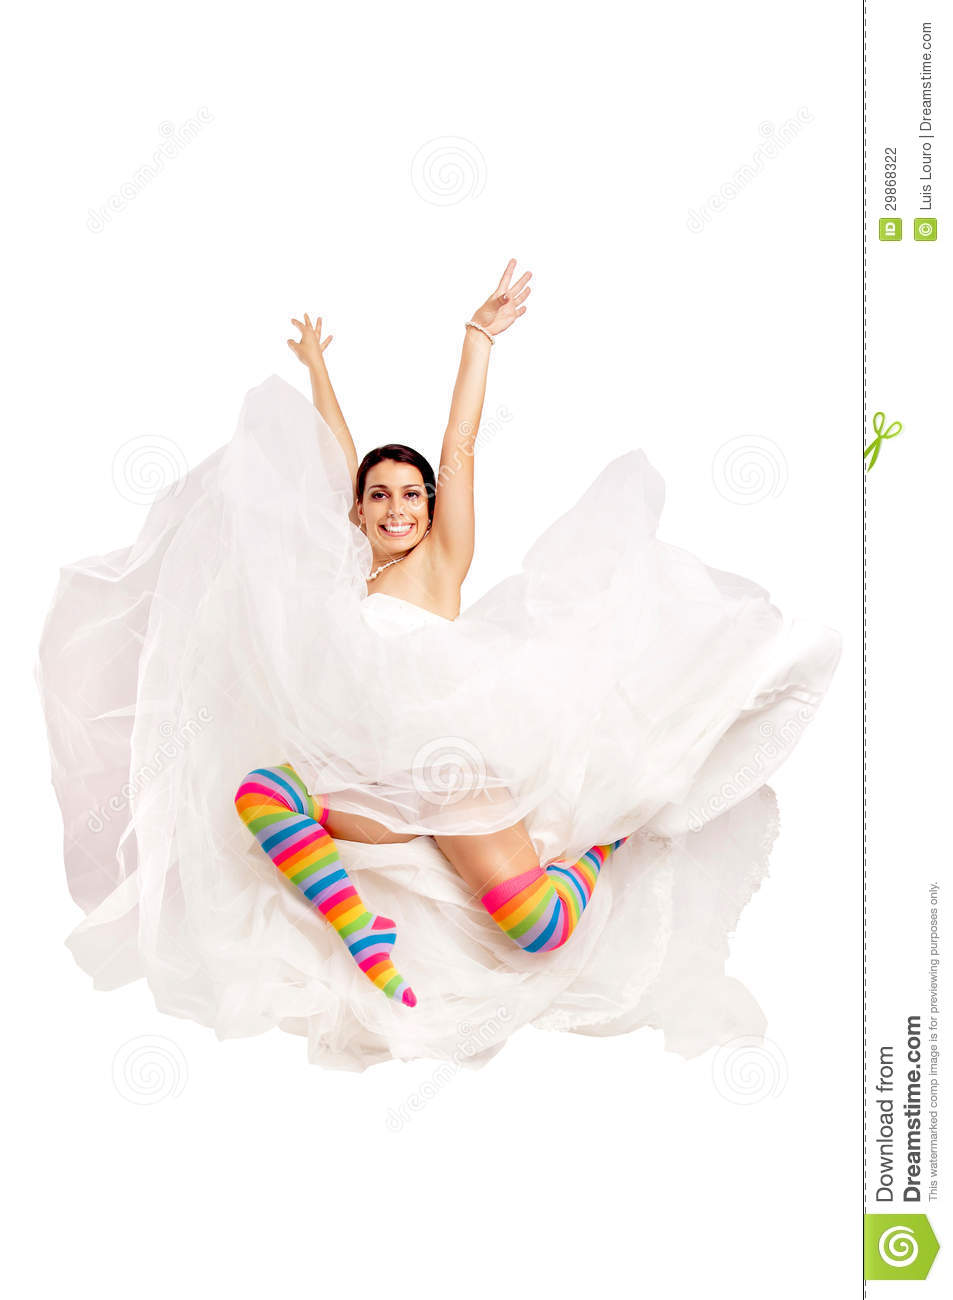 Happy fun bride